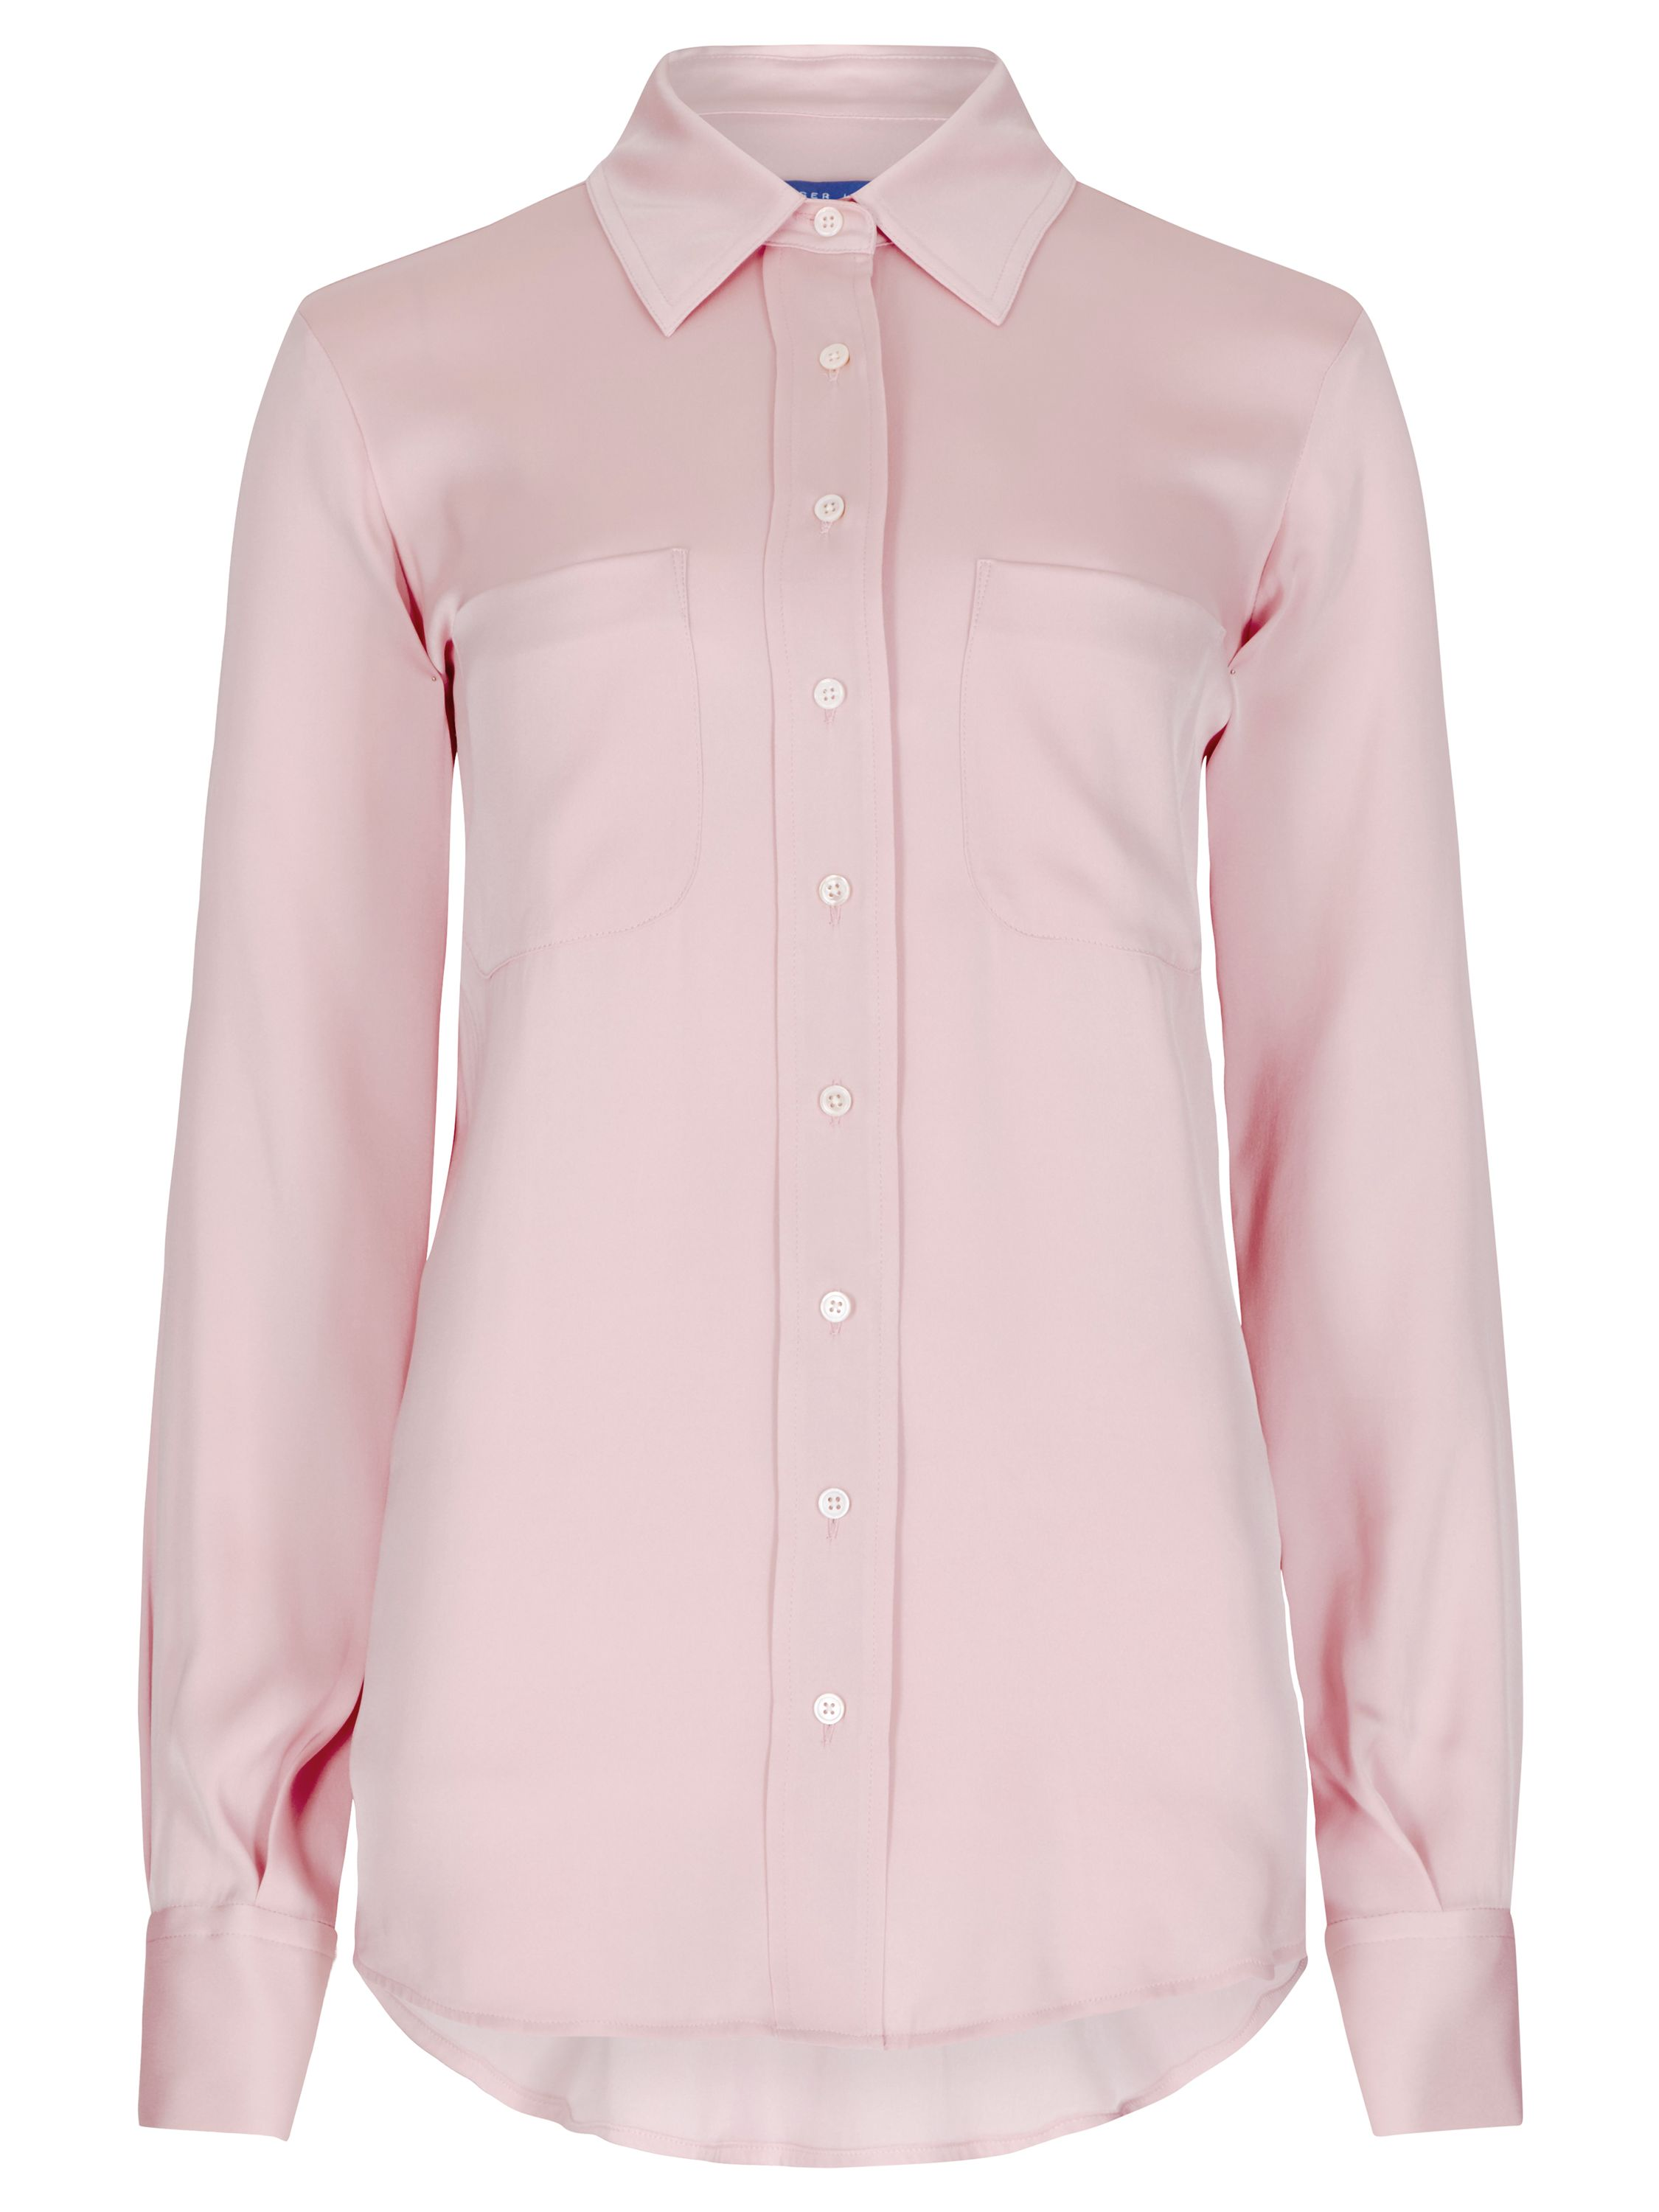 Winser London Silk Shirt, Pink